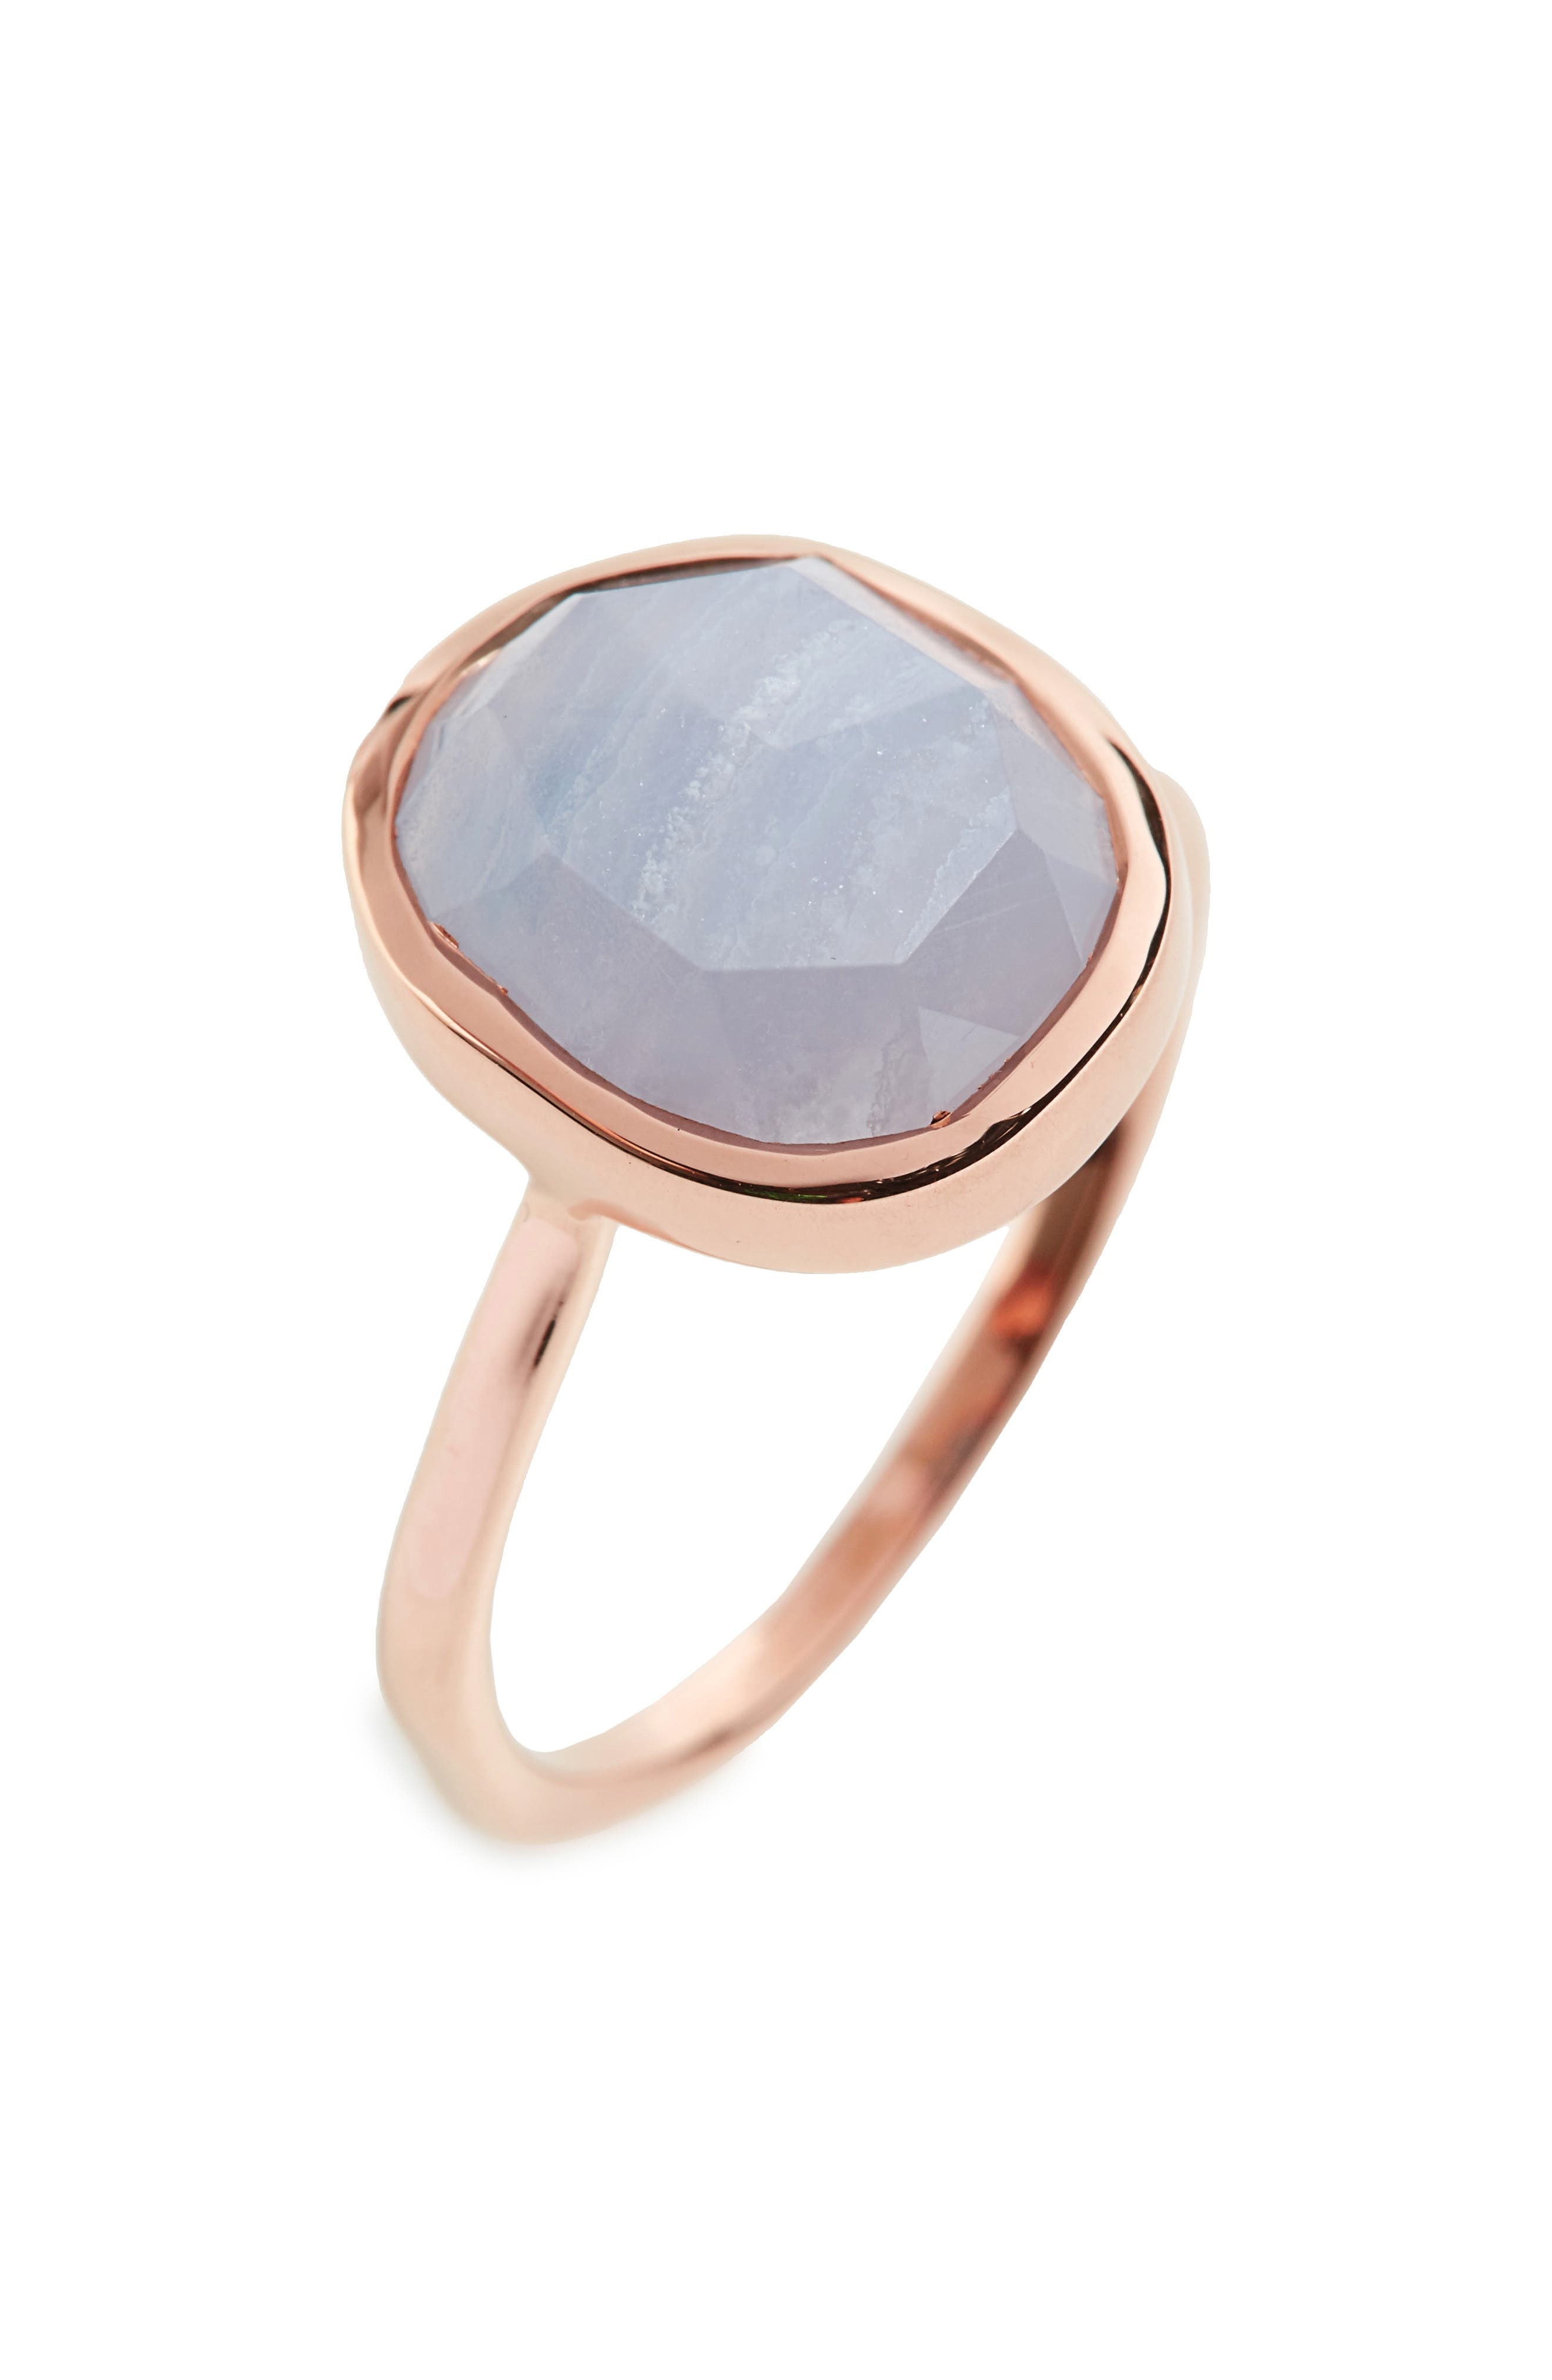 'Siren' Medium Semiprecious Stone Stacking Ring,                         Main,                         color, ROSE GOLD/ BLUE LACE AGATE